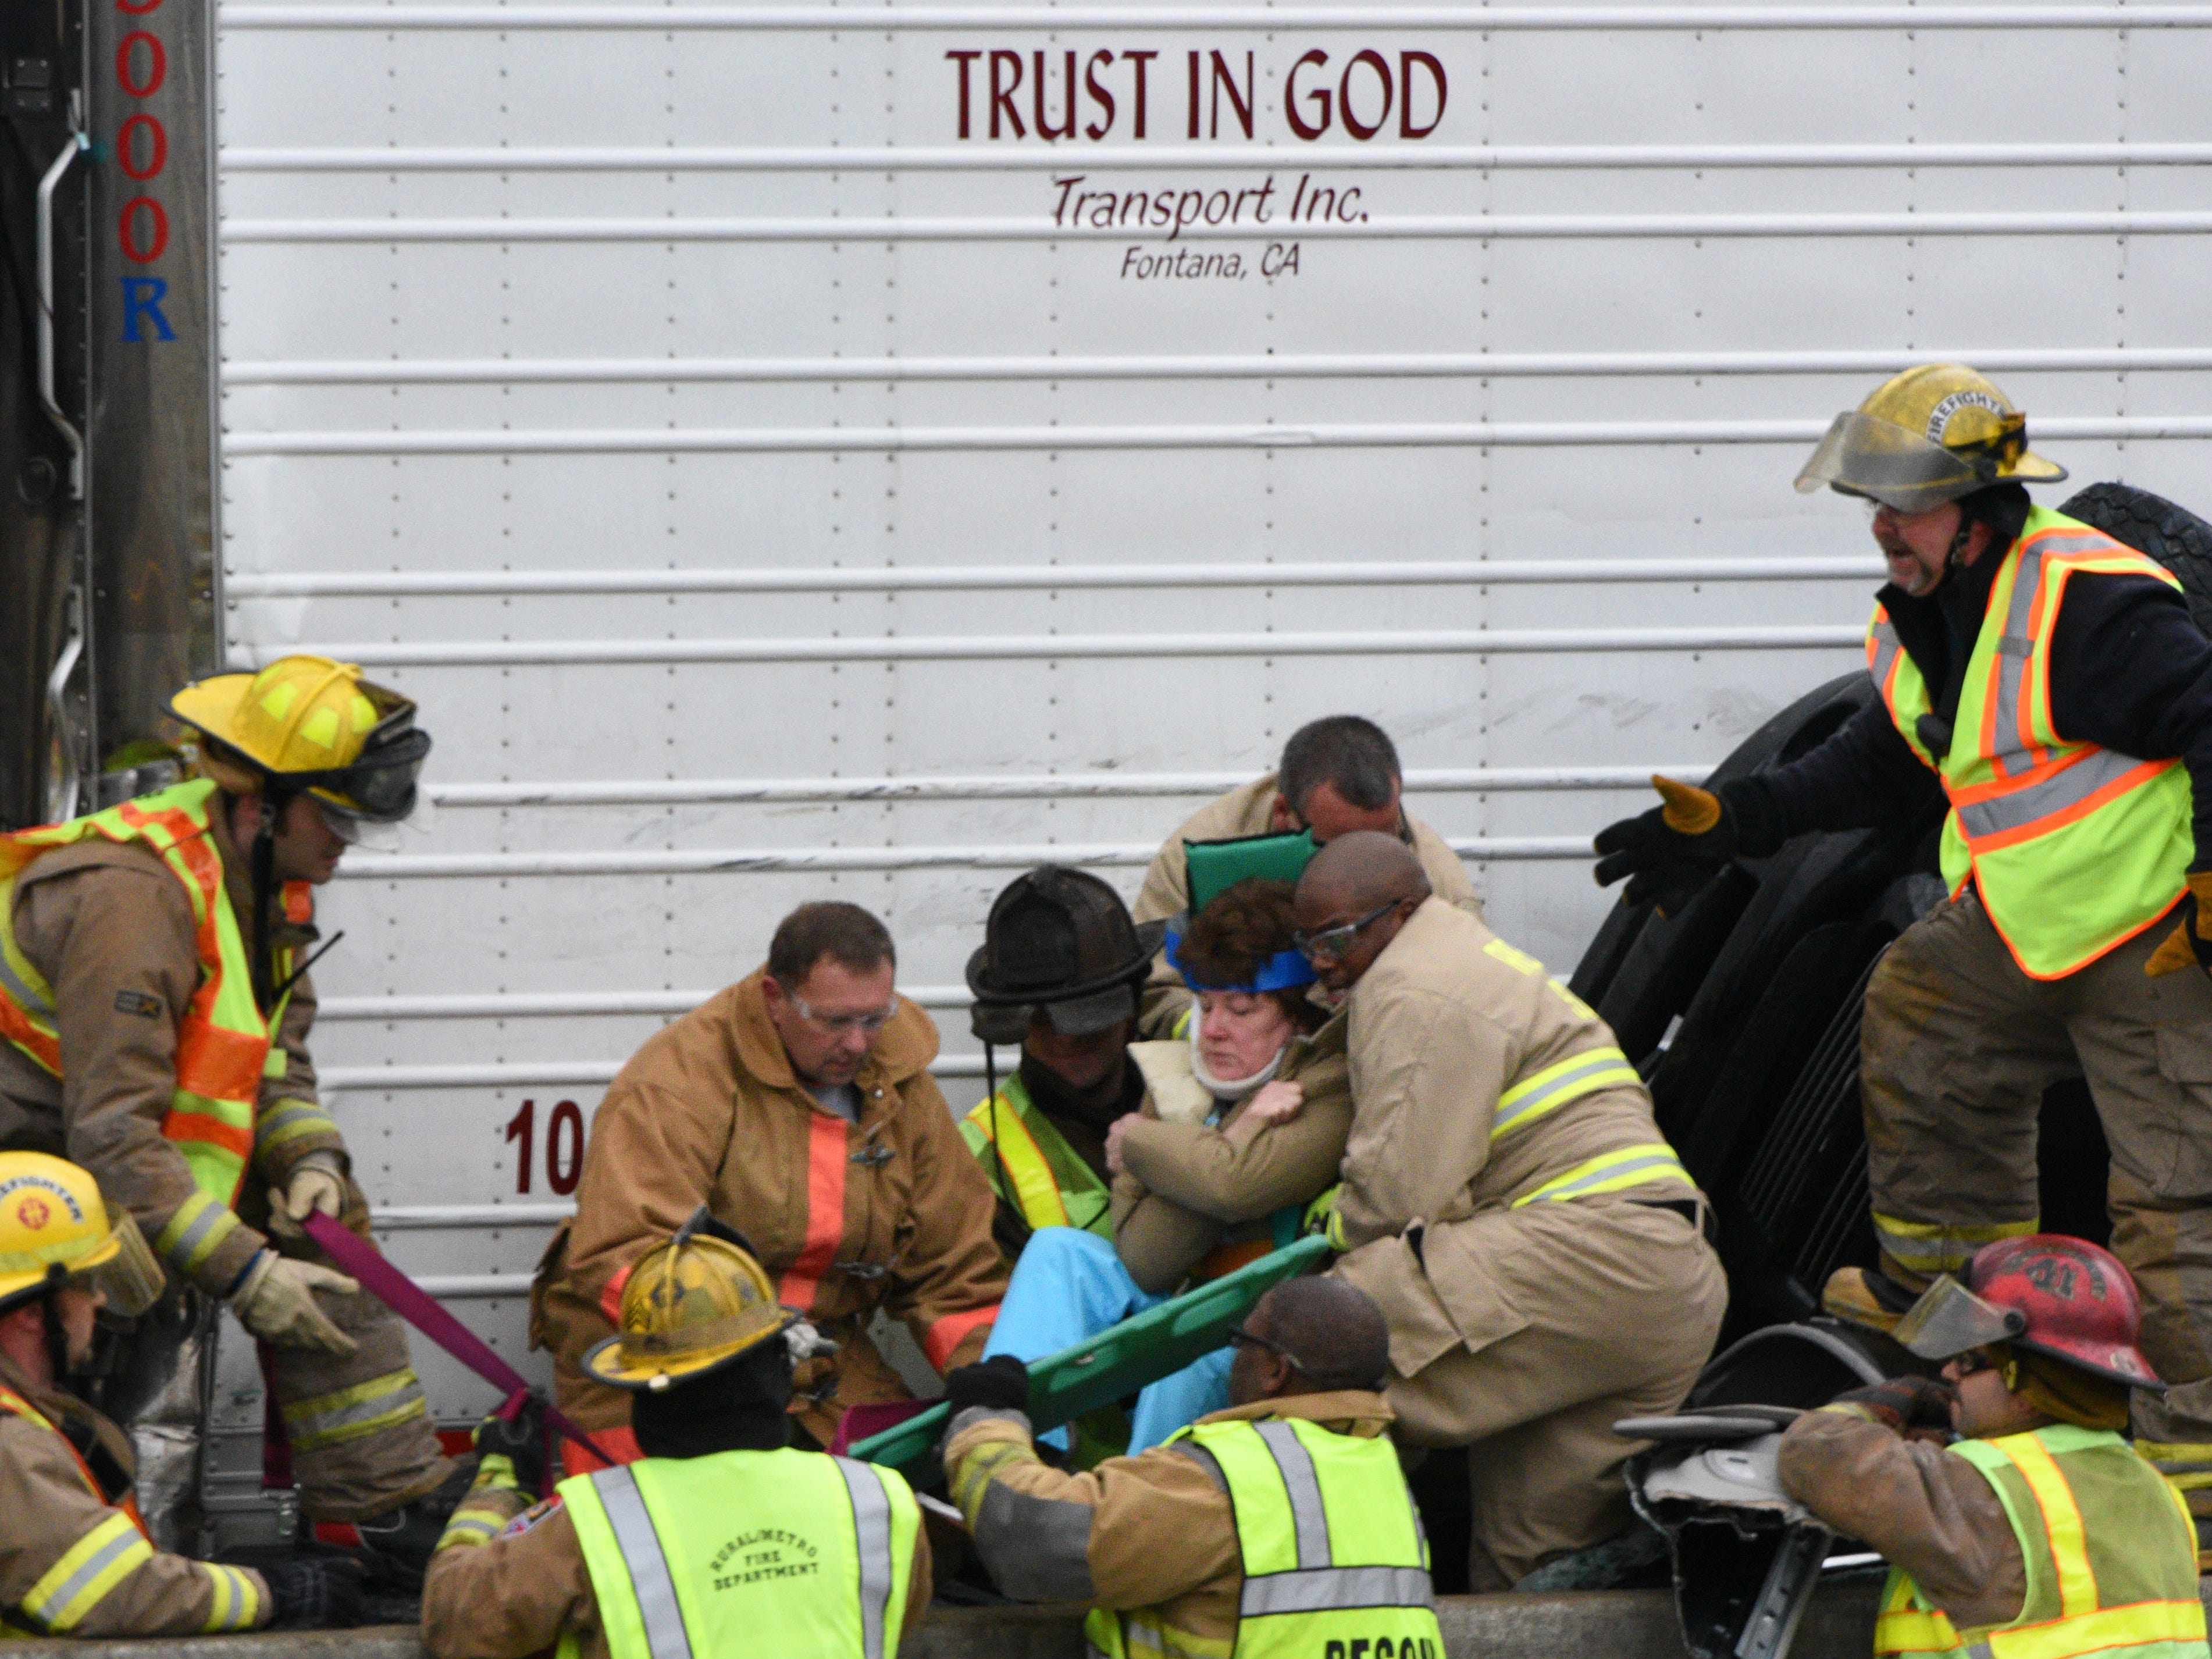 Members of the Knoxville Volunteer Emergency Rescue Squad work Thursday to extract a female patient from a vehicle crushed against a concrete barrier wall by a tractor-trailer rig on Interstate 40 East near the Watt Road interchange Thursday, Dec. 4, 2014.